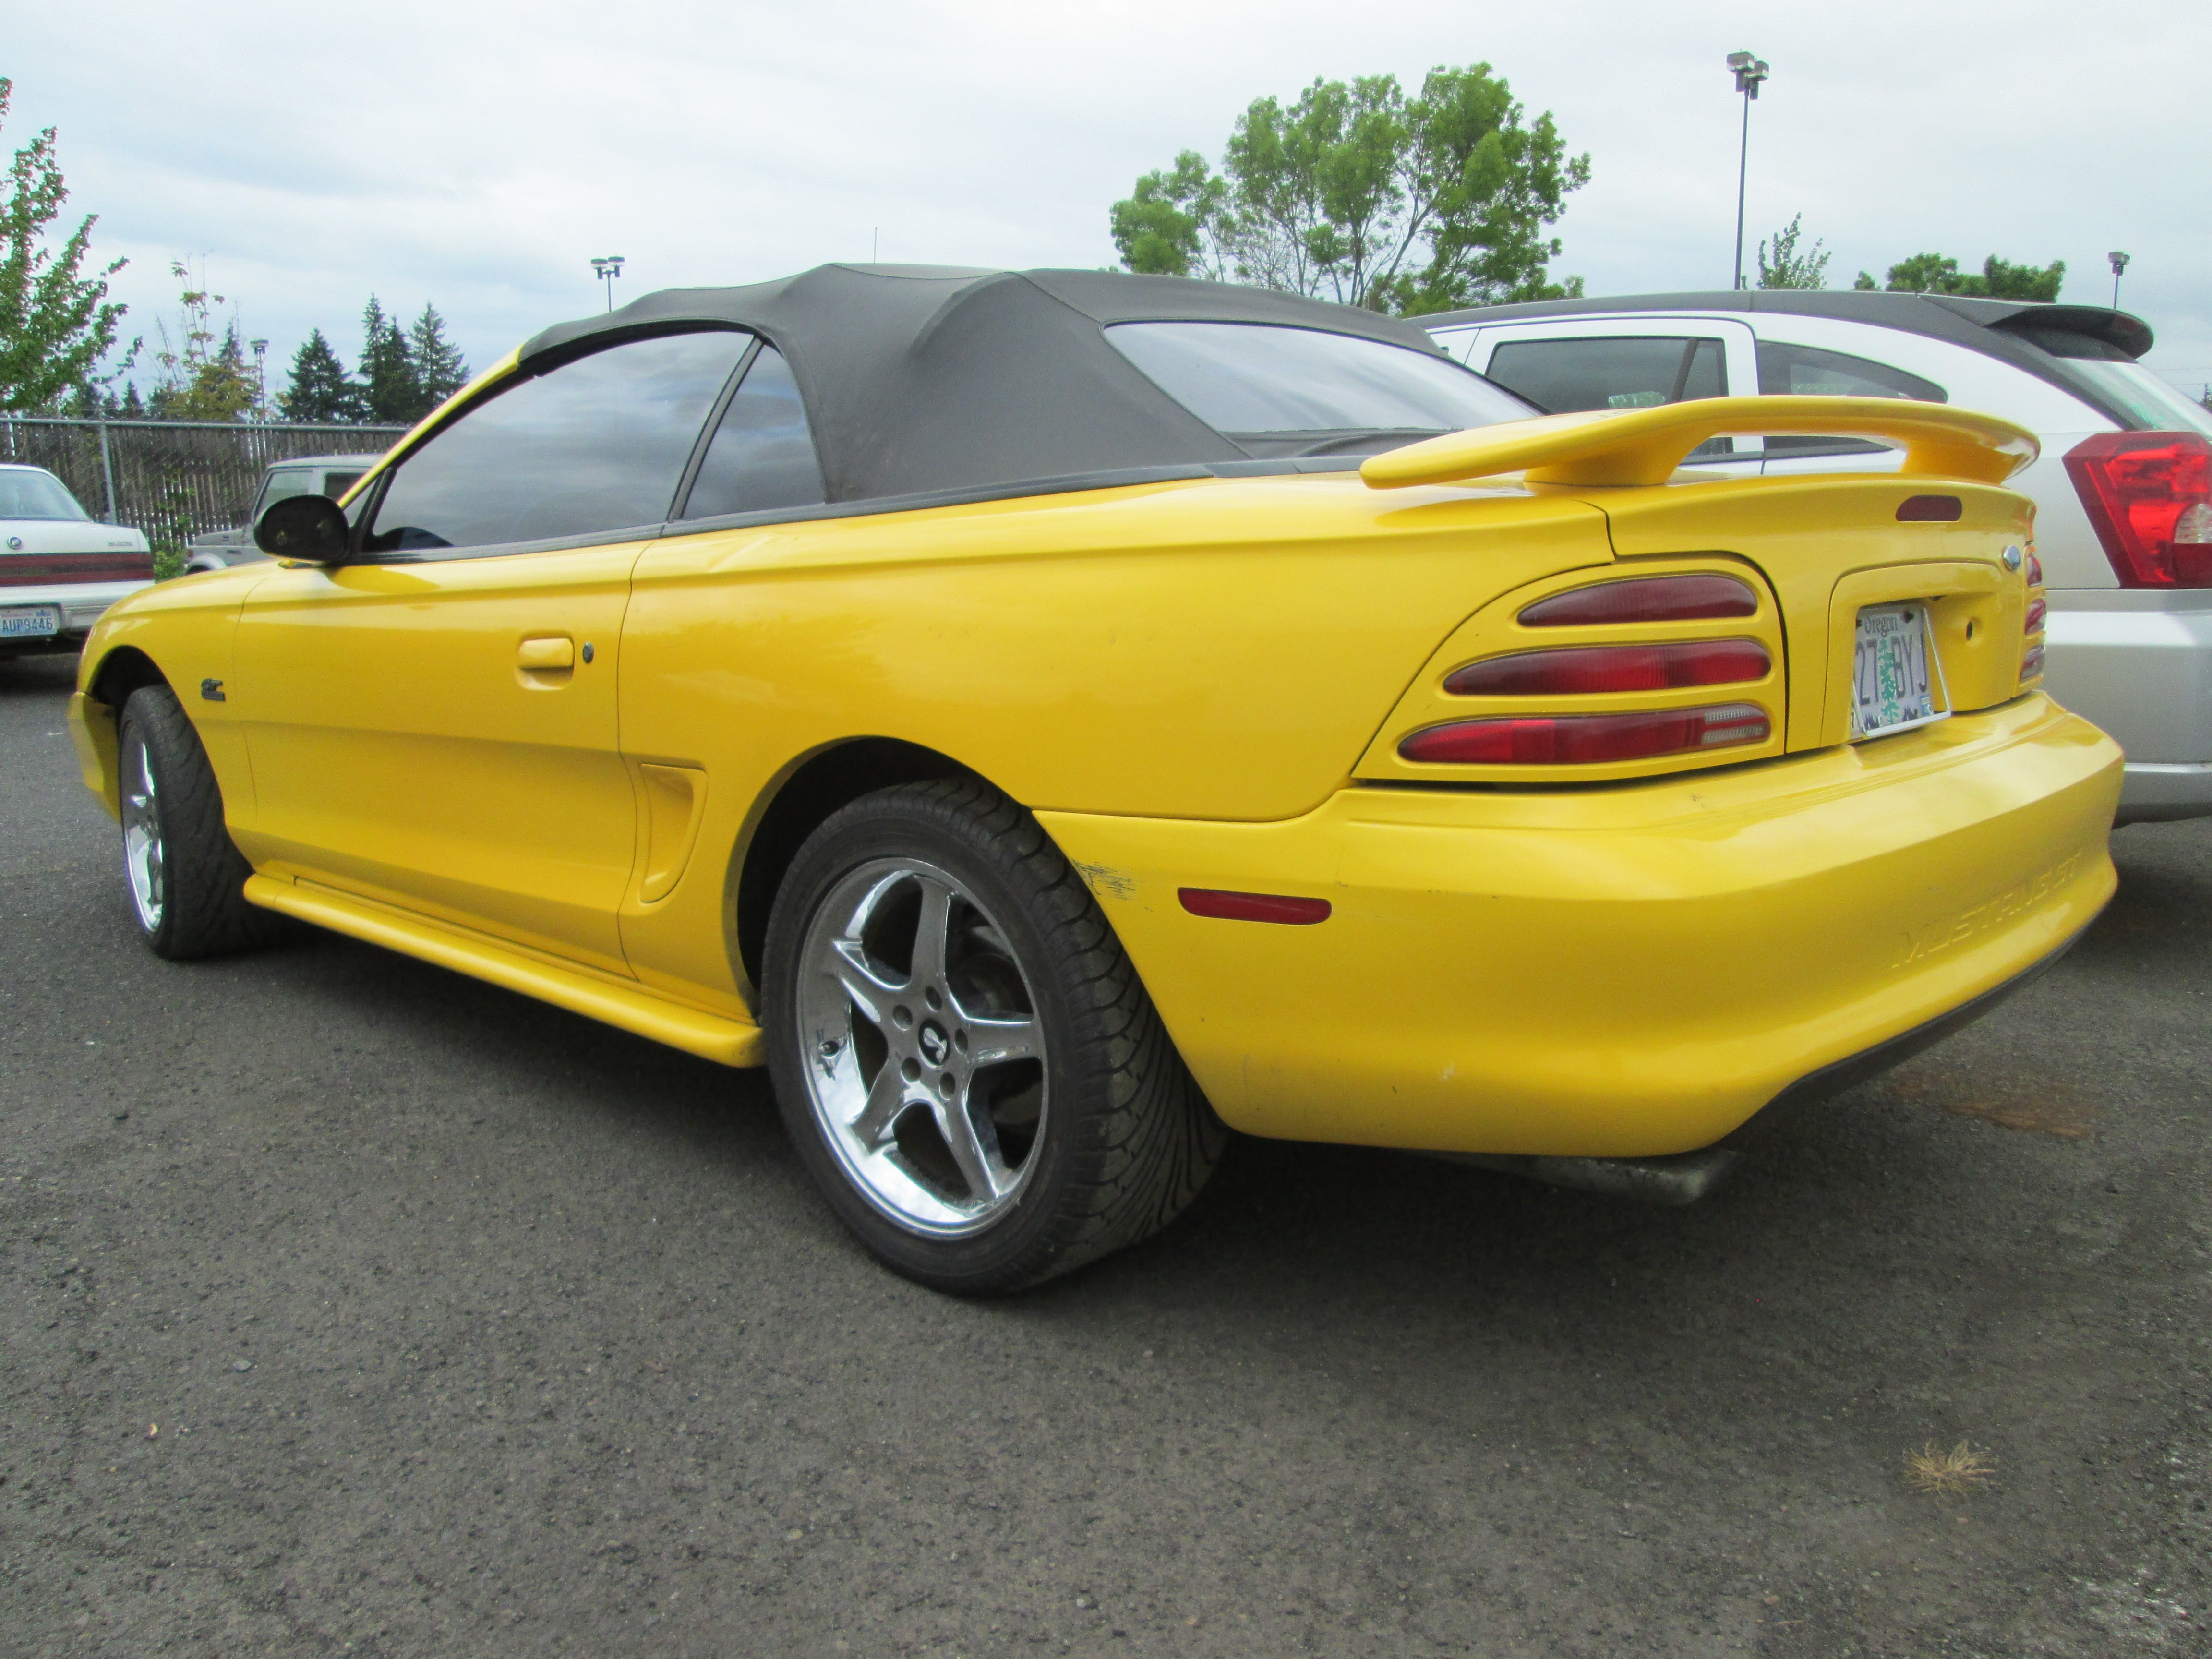 Tune up for a '94 Mustang GT - Fast Specialties - Performance Auto Body Shop, Auto ...